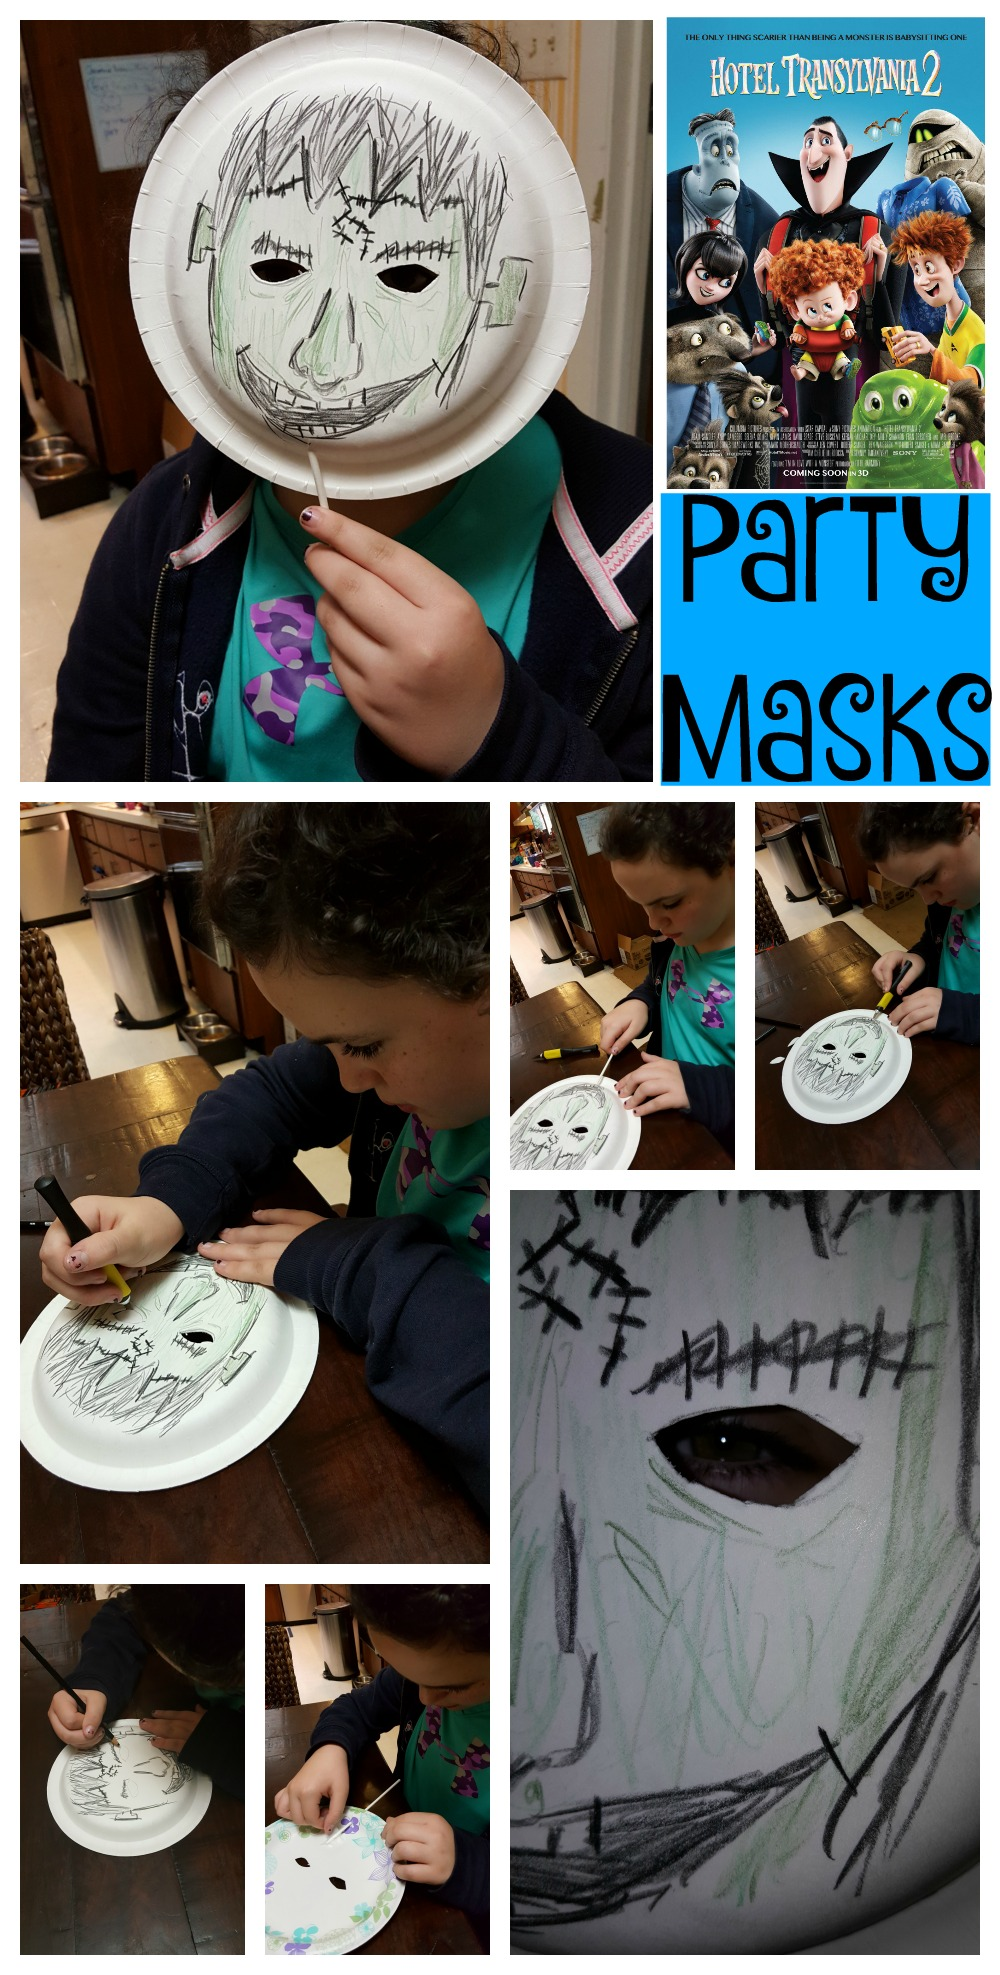 Family Fun with Hotel Transylvania 2 NOW on Blu-ray Party masks